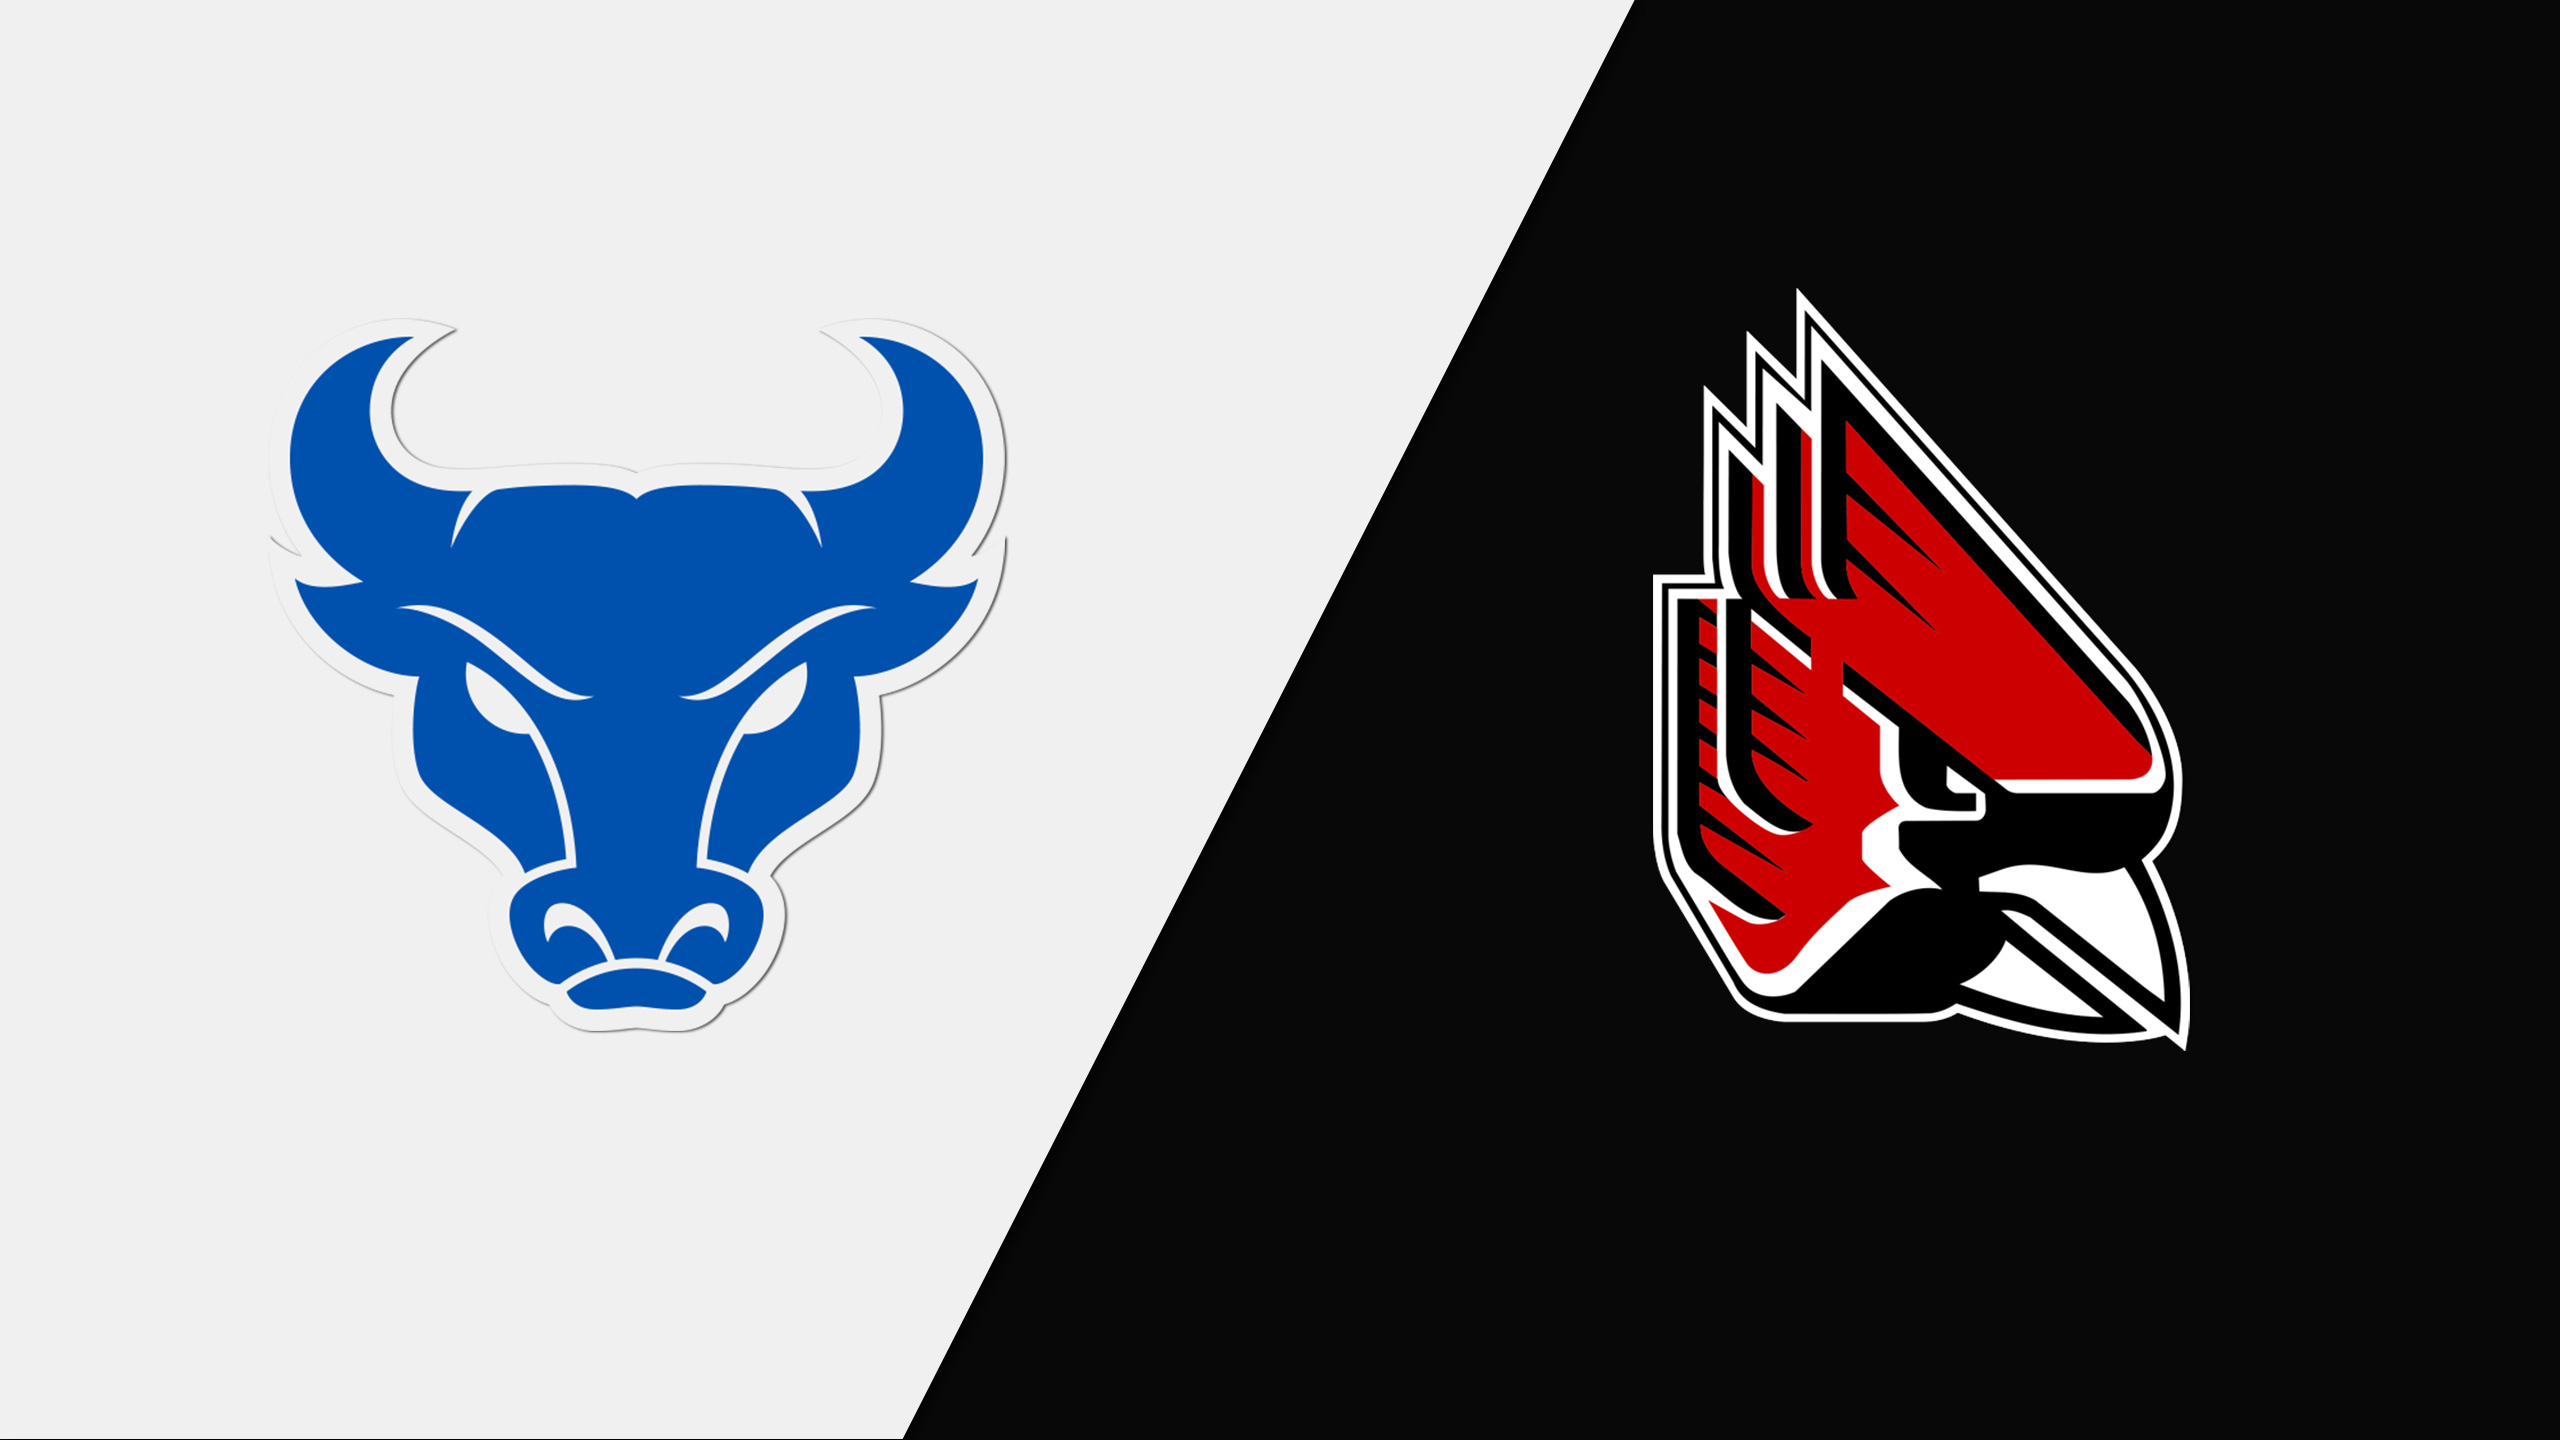 Buffalo vs. Ball State (W Basketball)